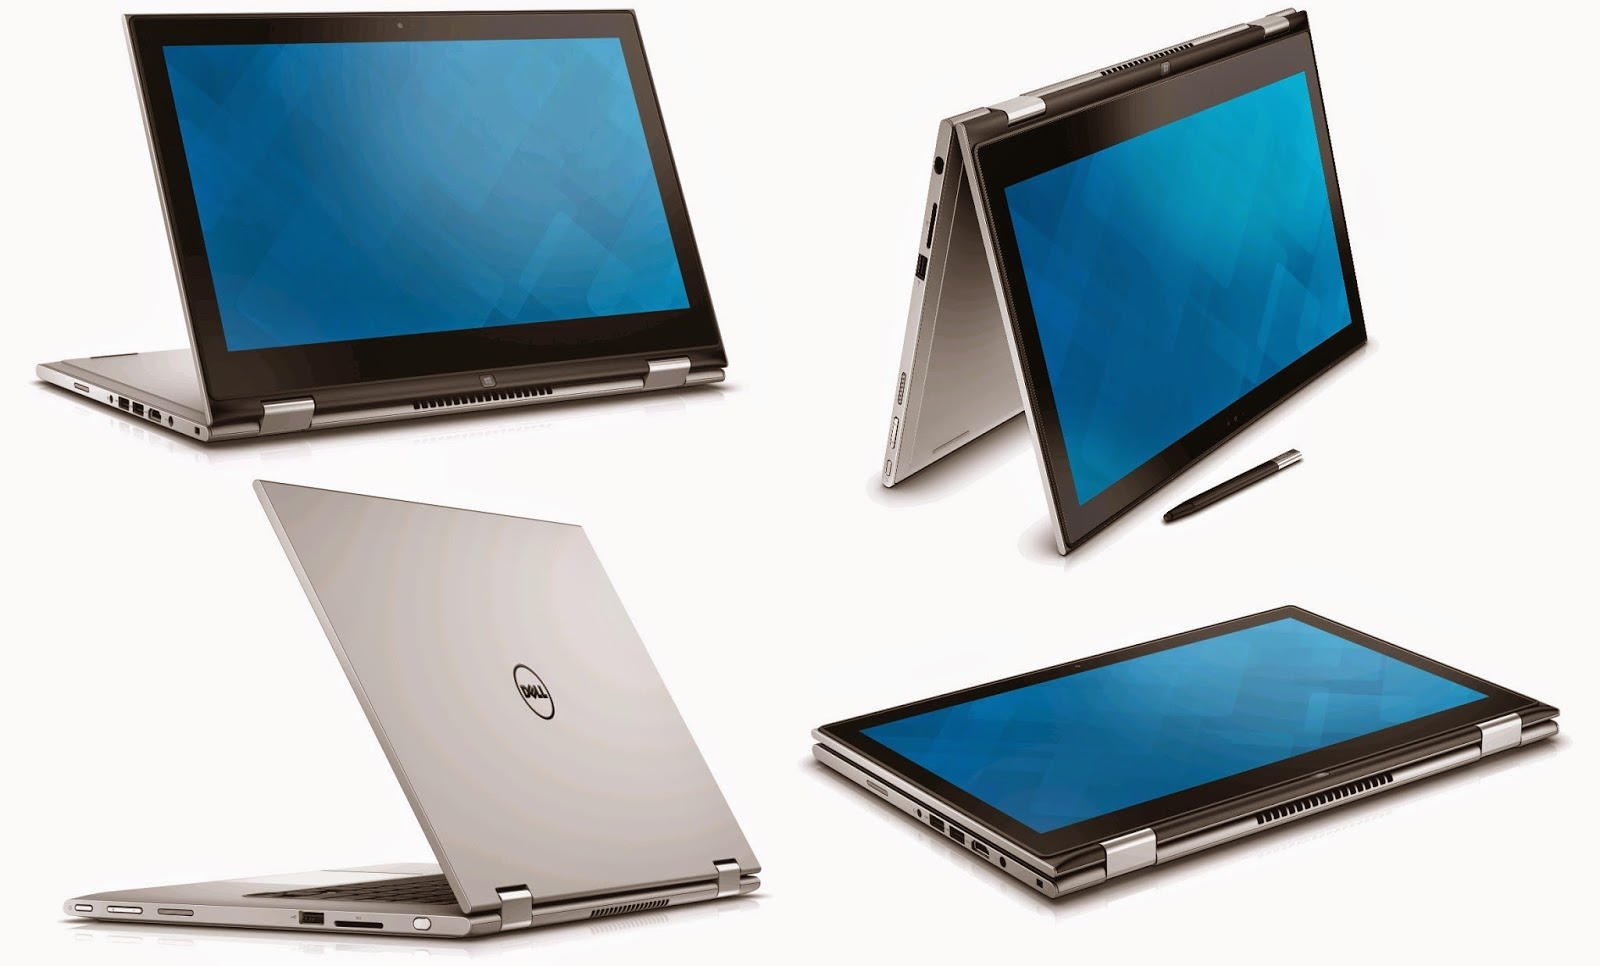 Dell Inspiron 7347 2in1 notebook